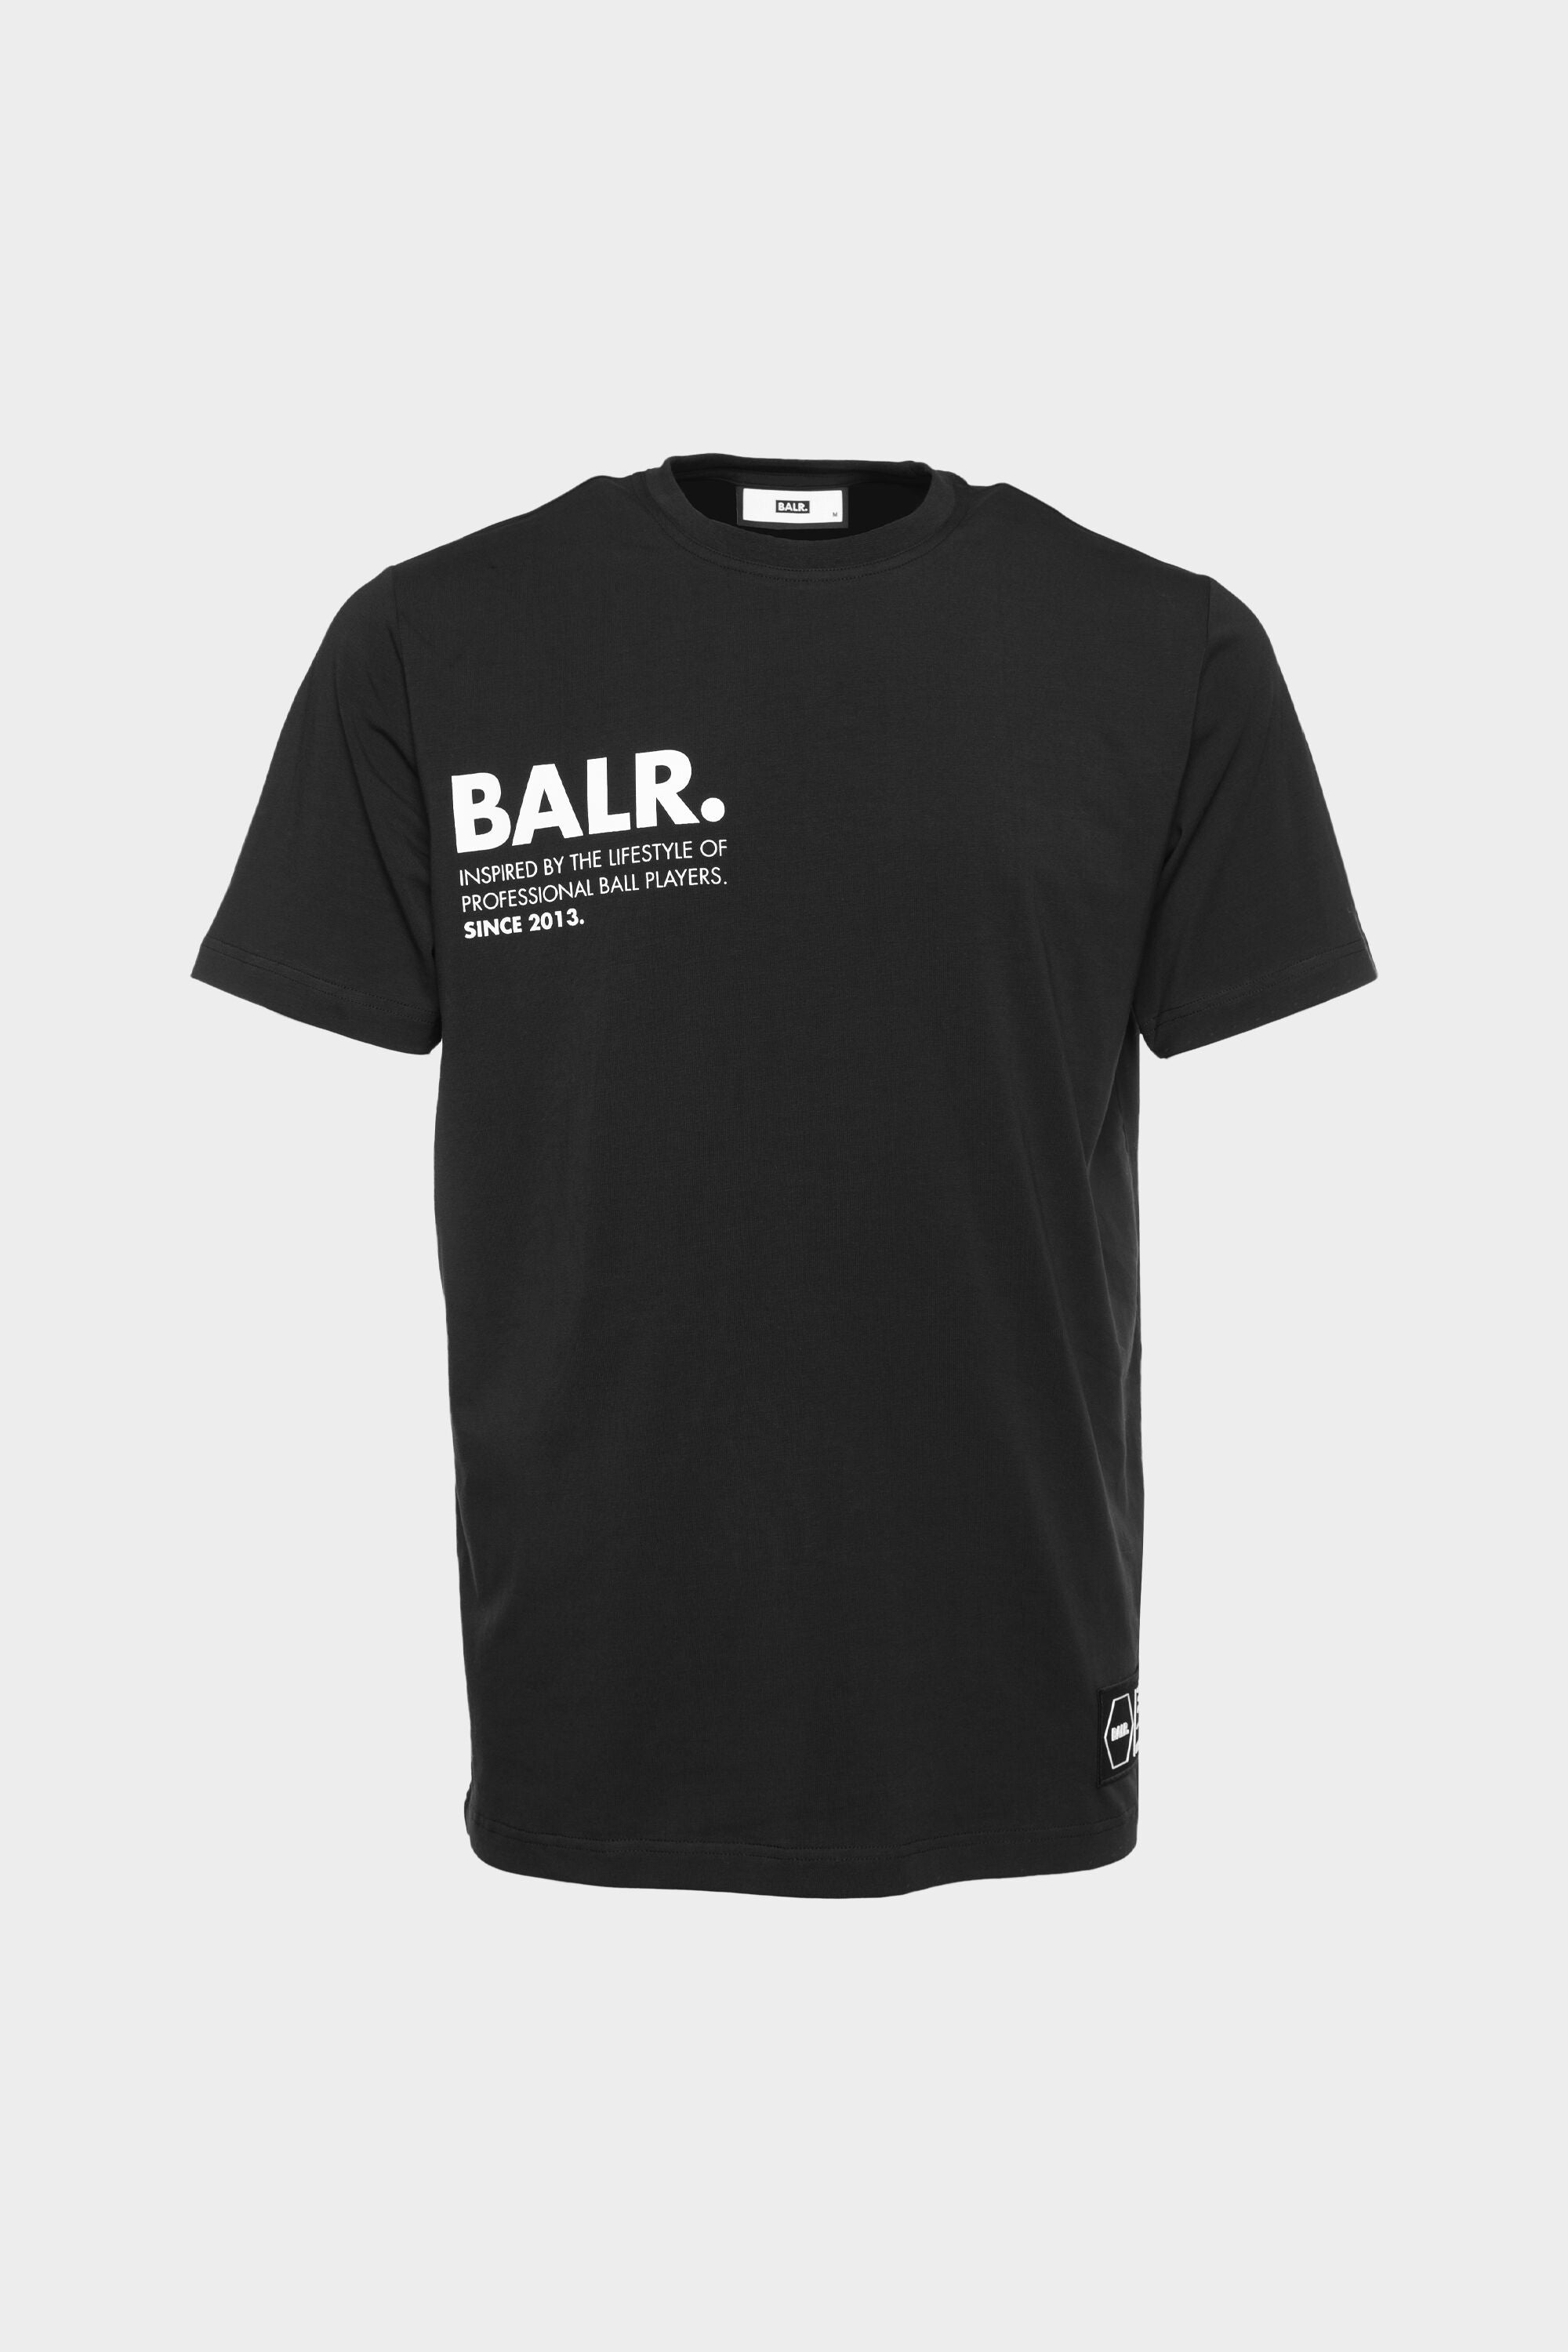 BALR Lifestyle Straight T Shirt